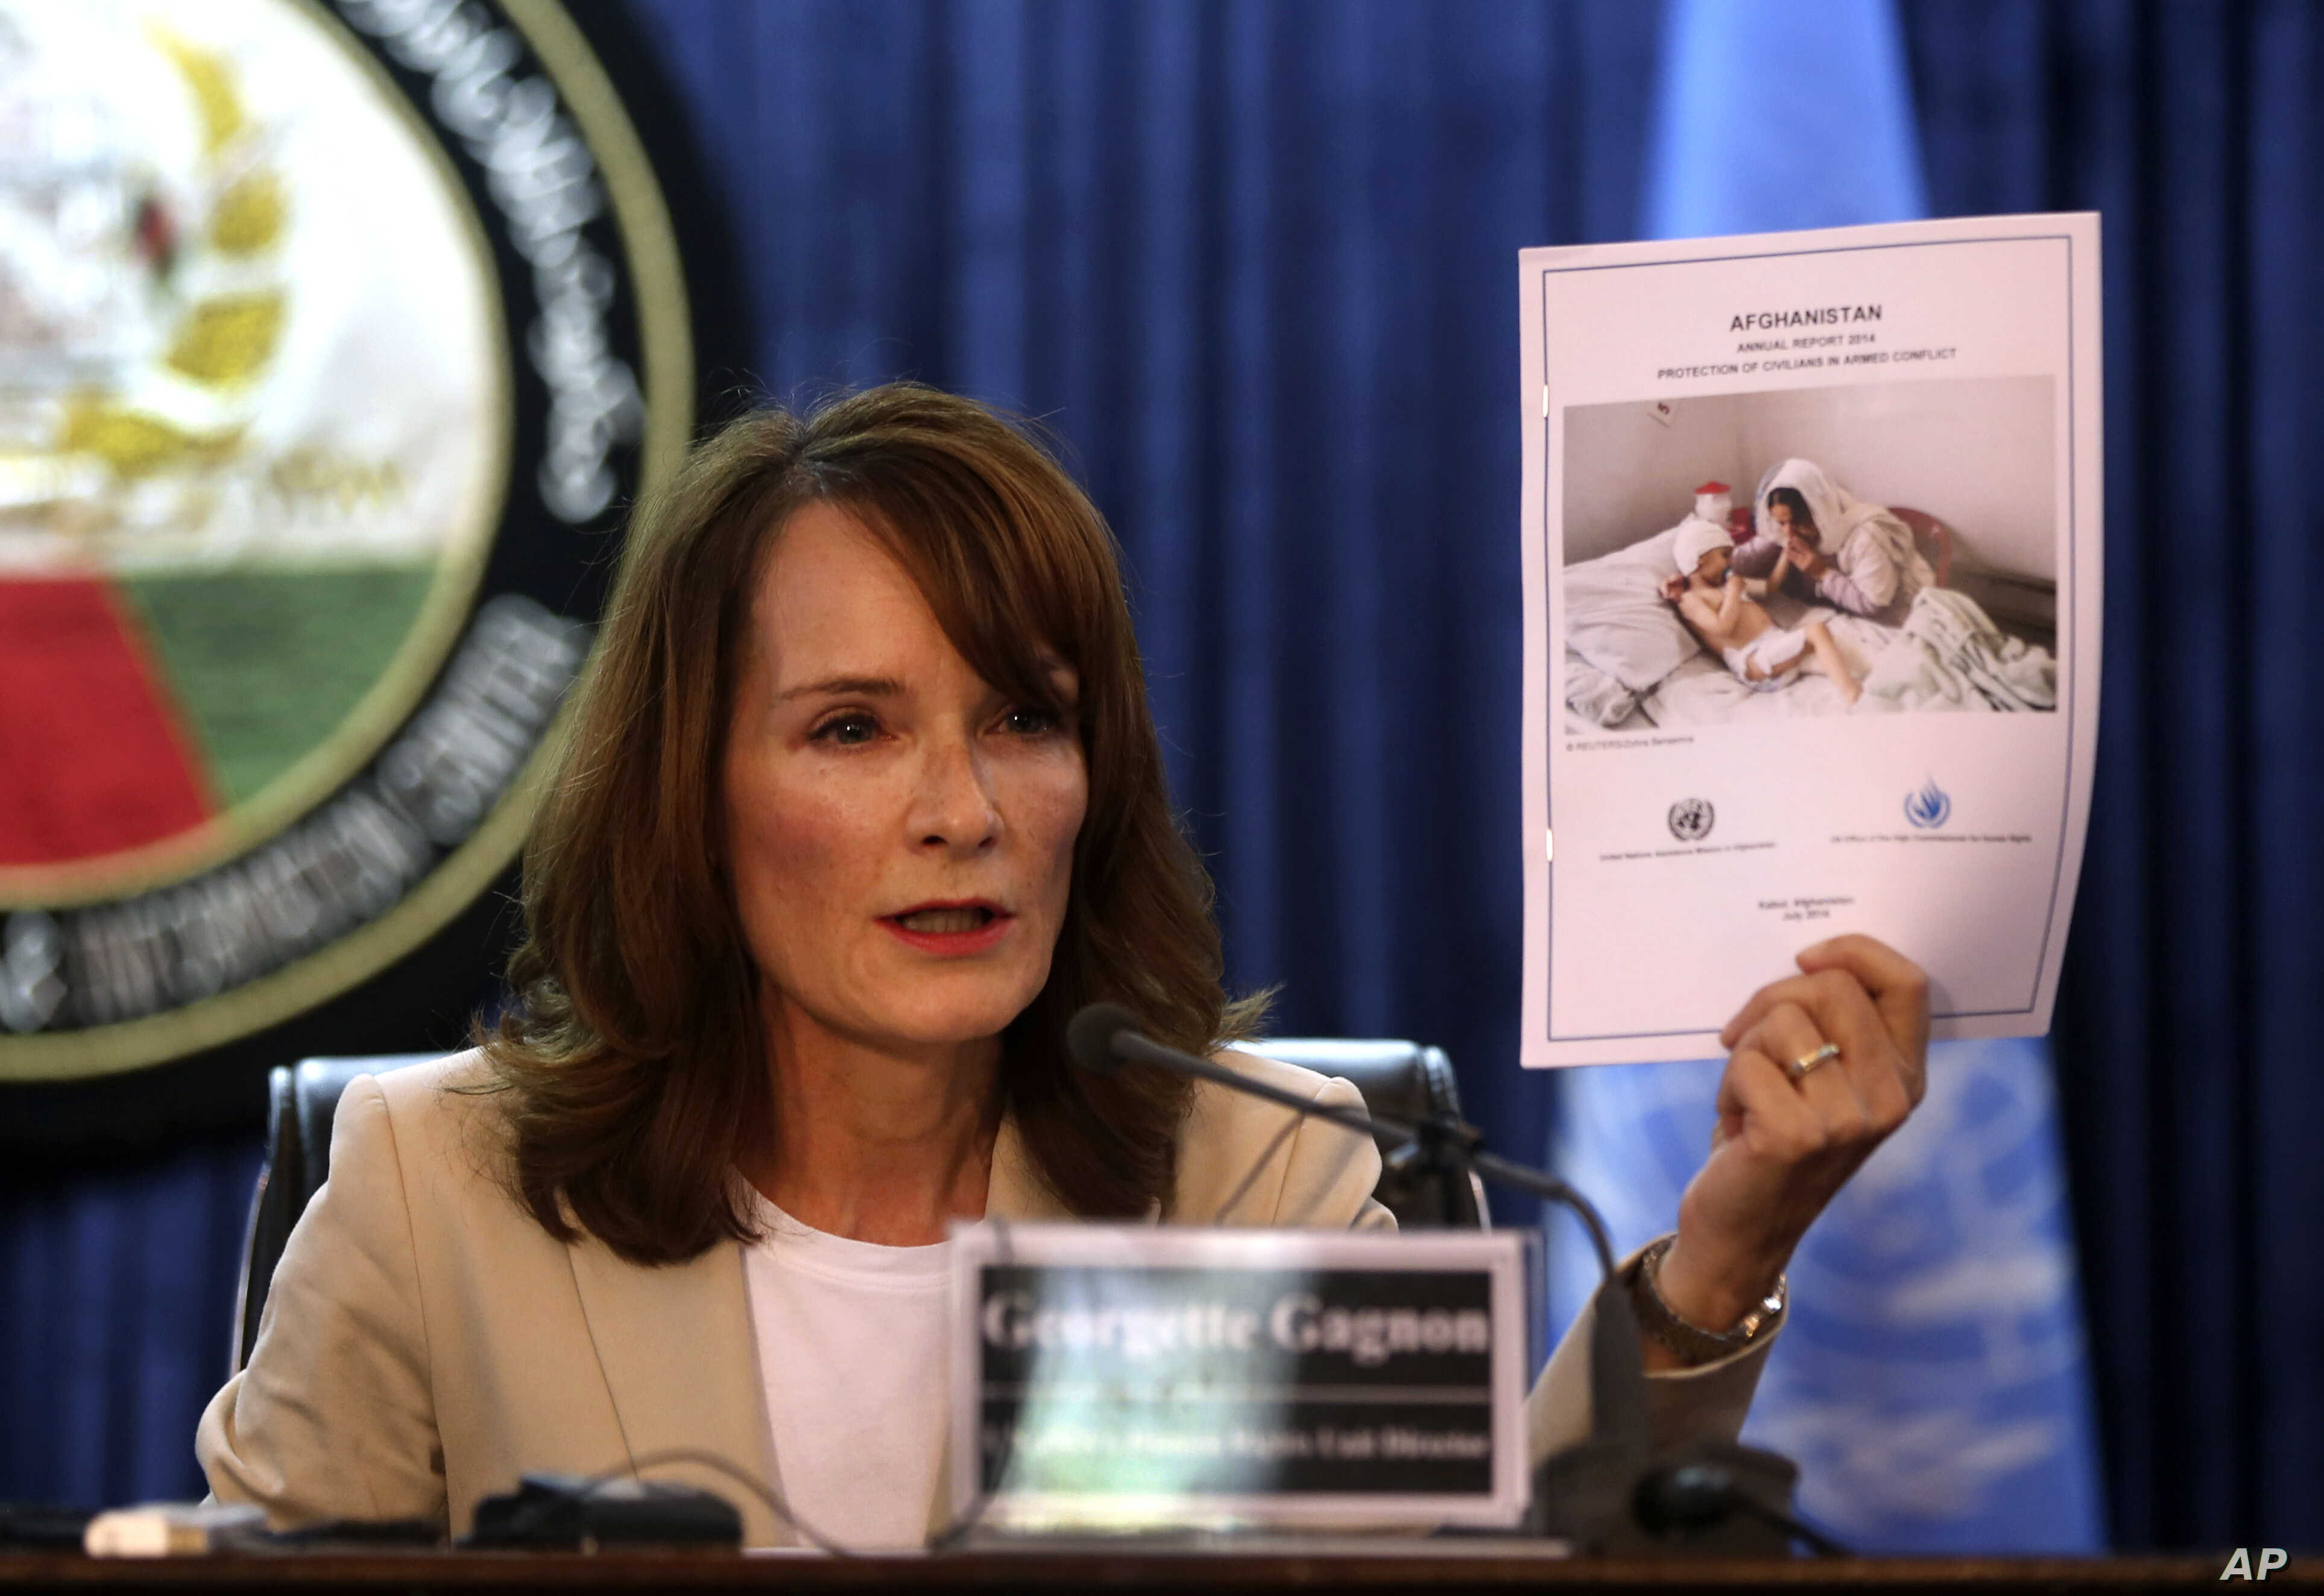 Georgette Gagnon, the director of human rights for the U.N. mission in Afghanistan holds up a copy of a UN report during a news conference in Kabul, Afghanistan, July 9, 2014.